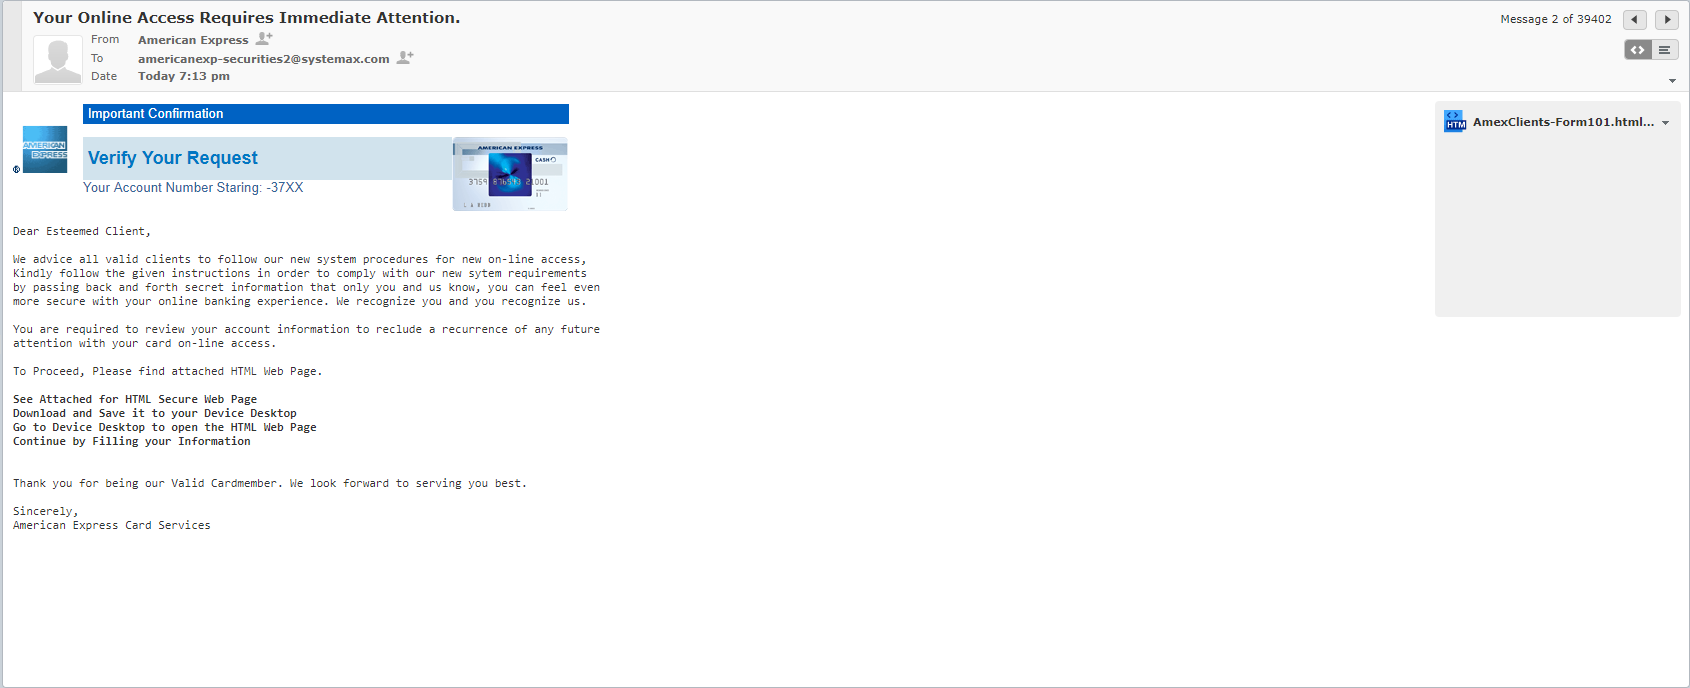 Fake American Express Email Says Your Account Requires